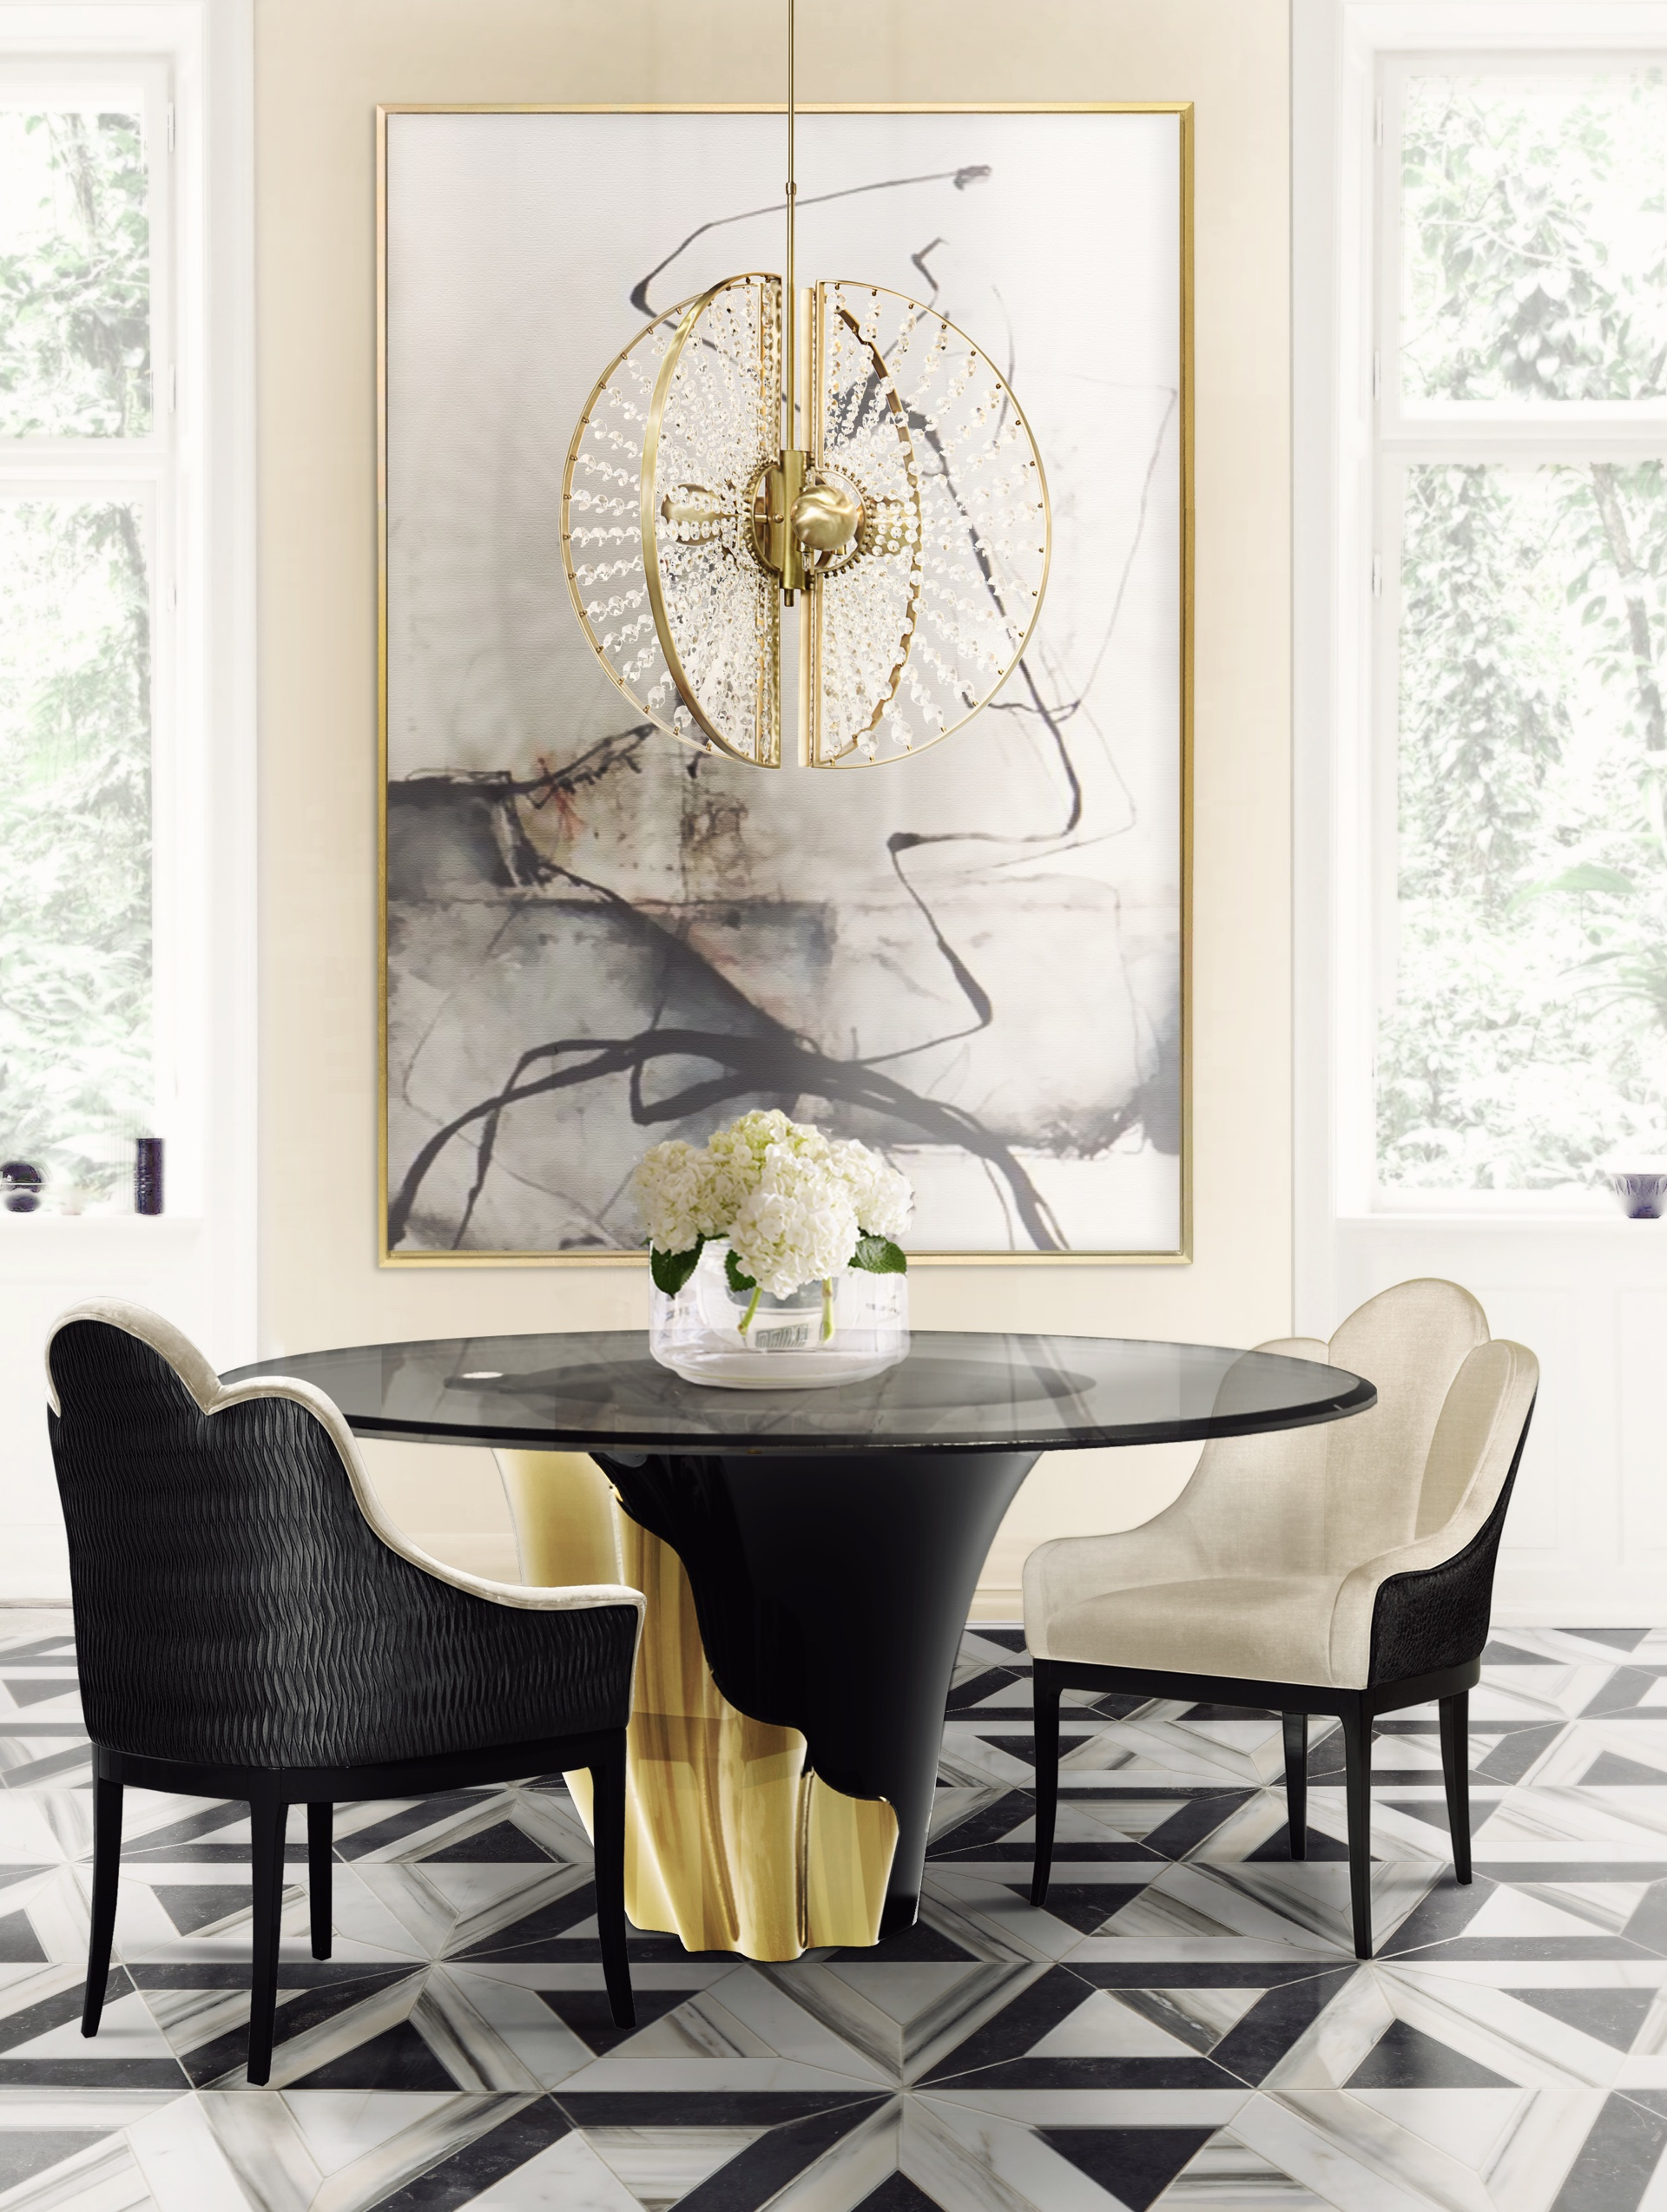 8 Trendy Dining Room Ideas for this Summer  trendy dining room ideas 8 Trendy Dining Room Ideas for this Summer anastasia dining chair koket projects